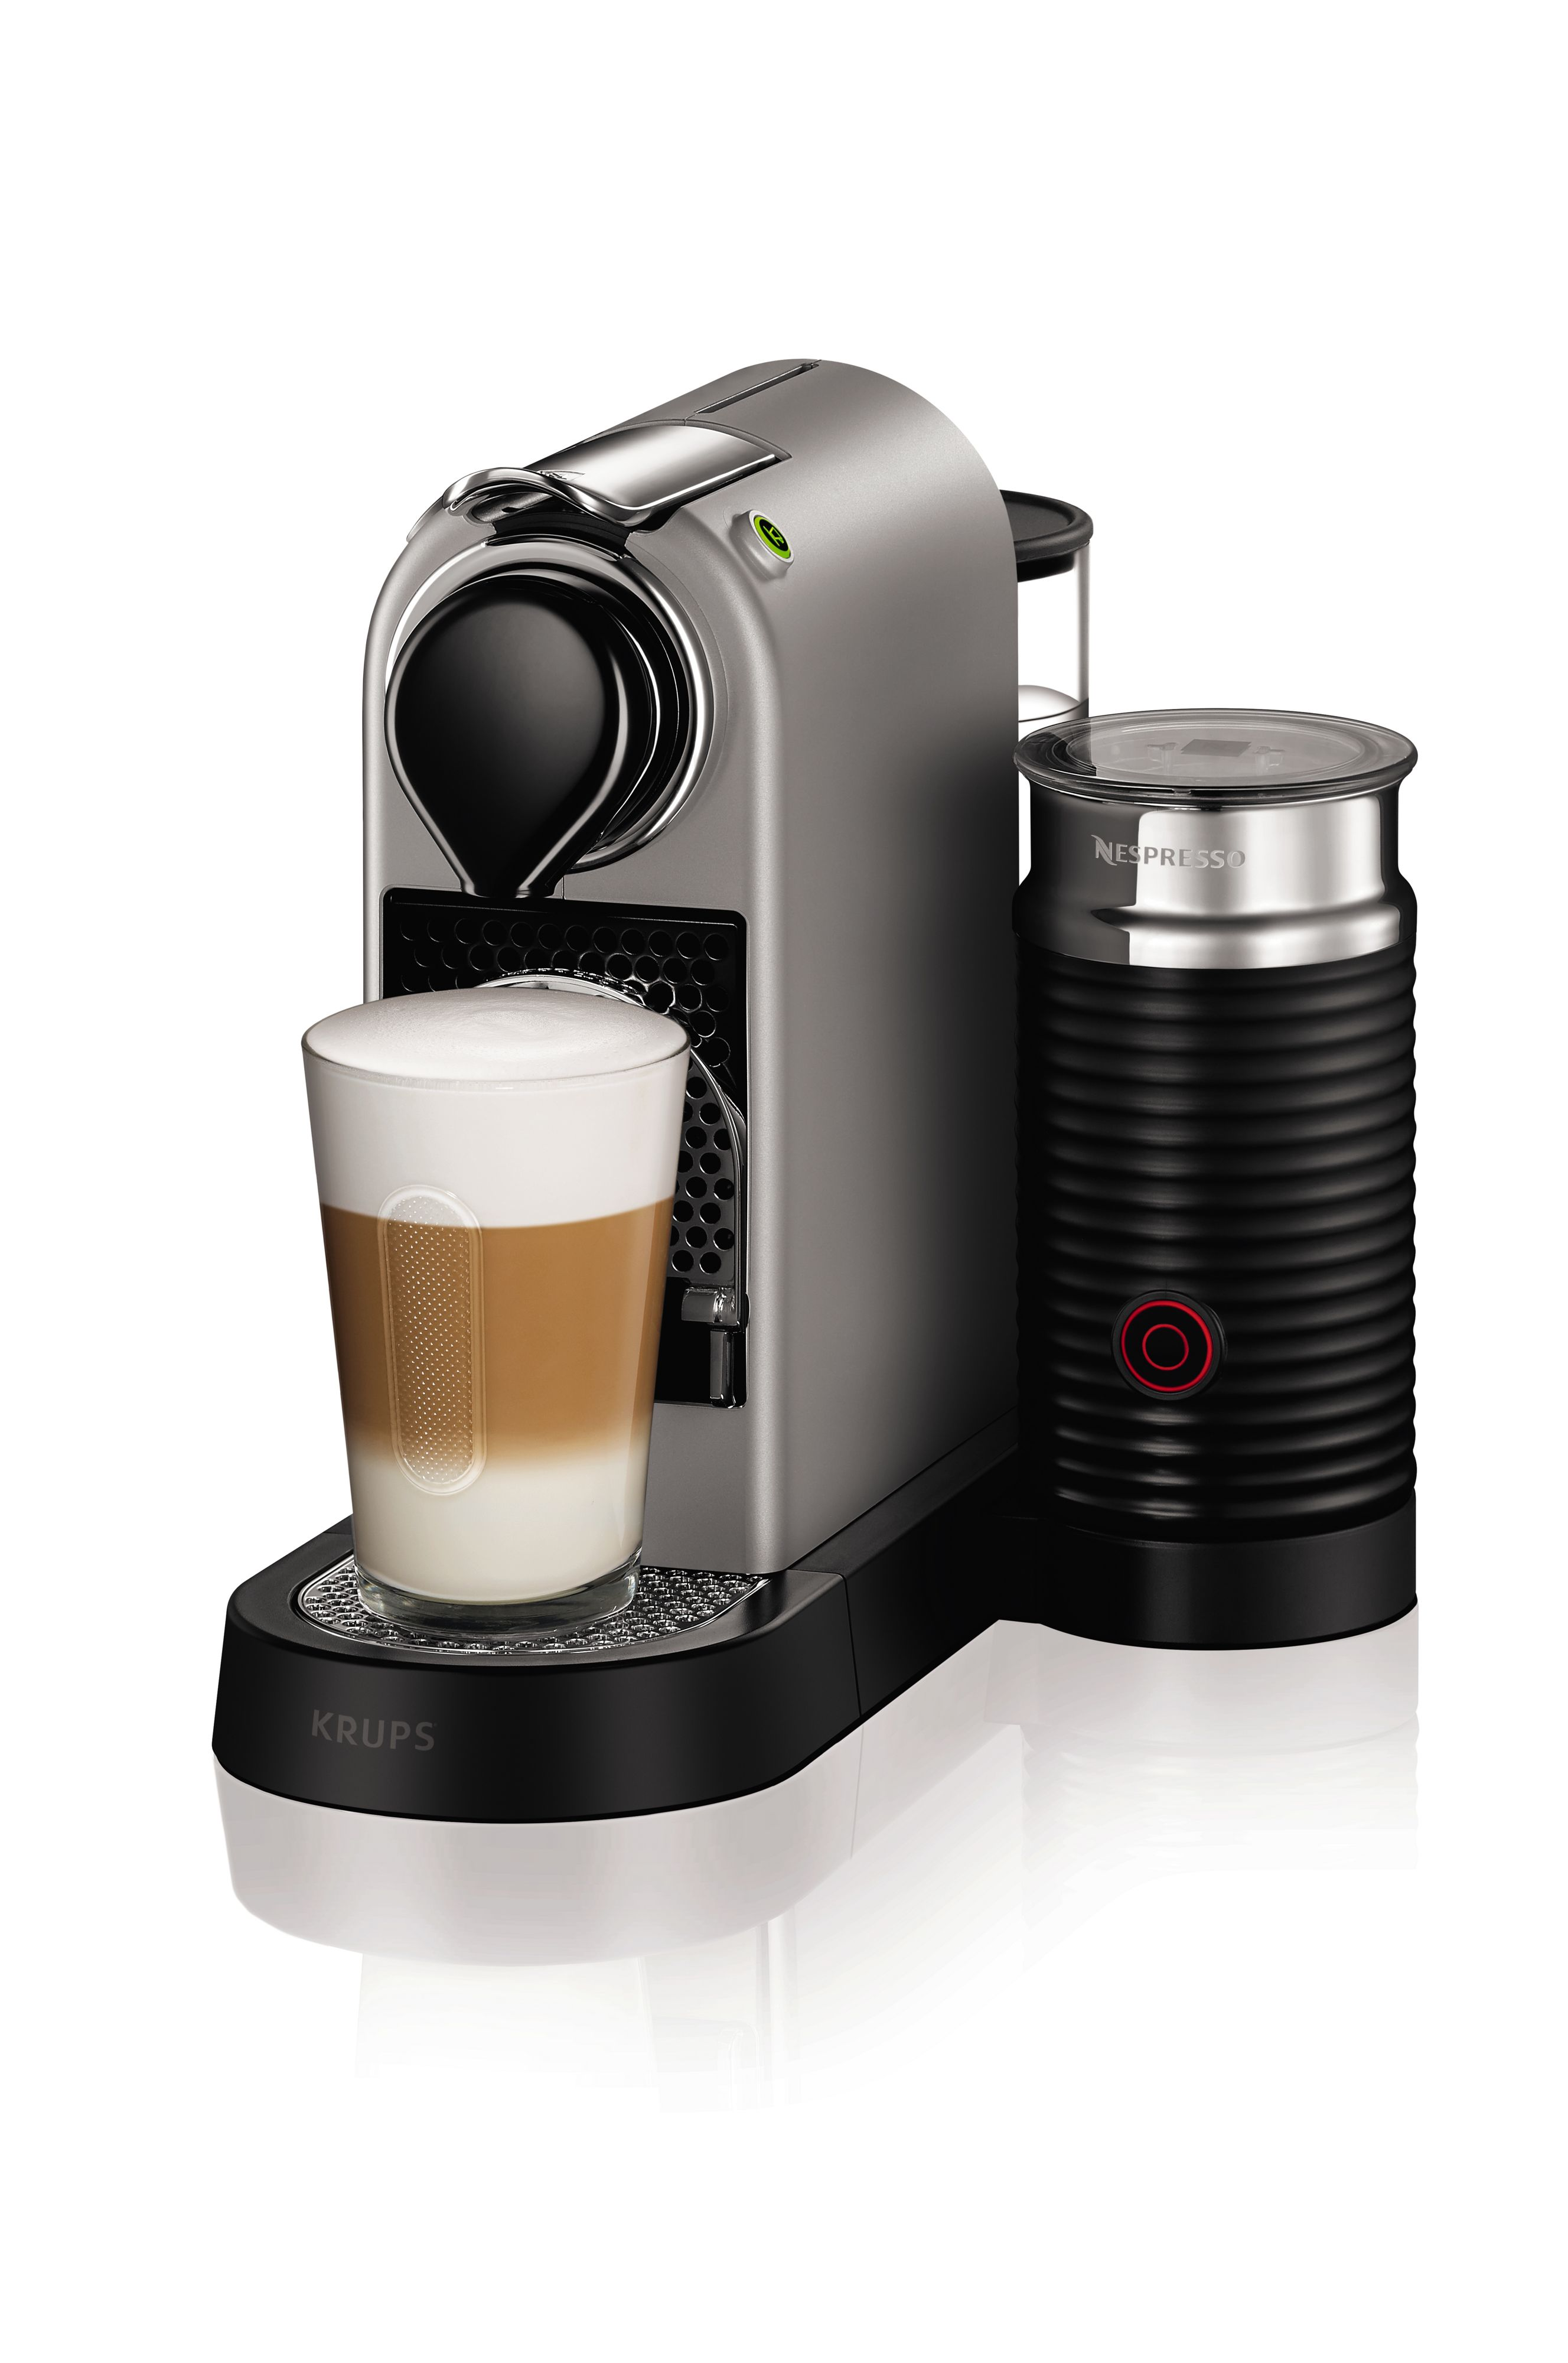 Krups Nespresso Citiz&Milk Machine 2016 Design Silver